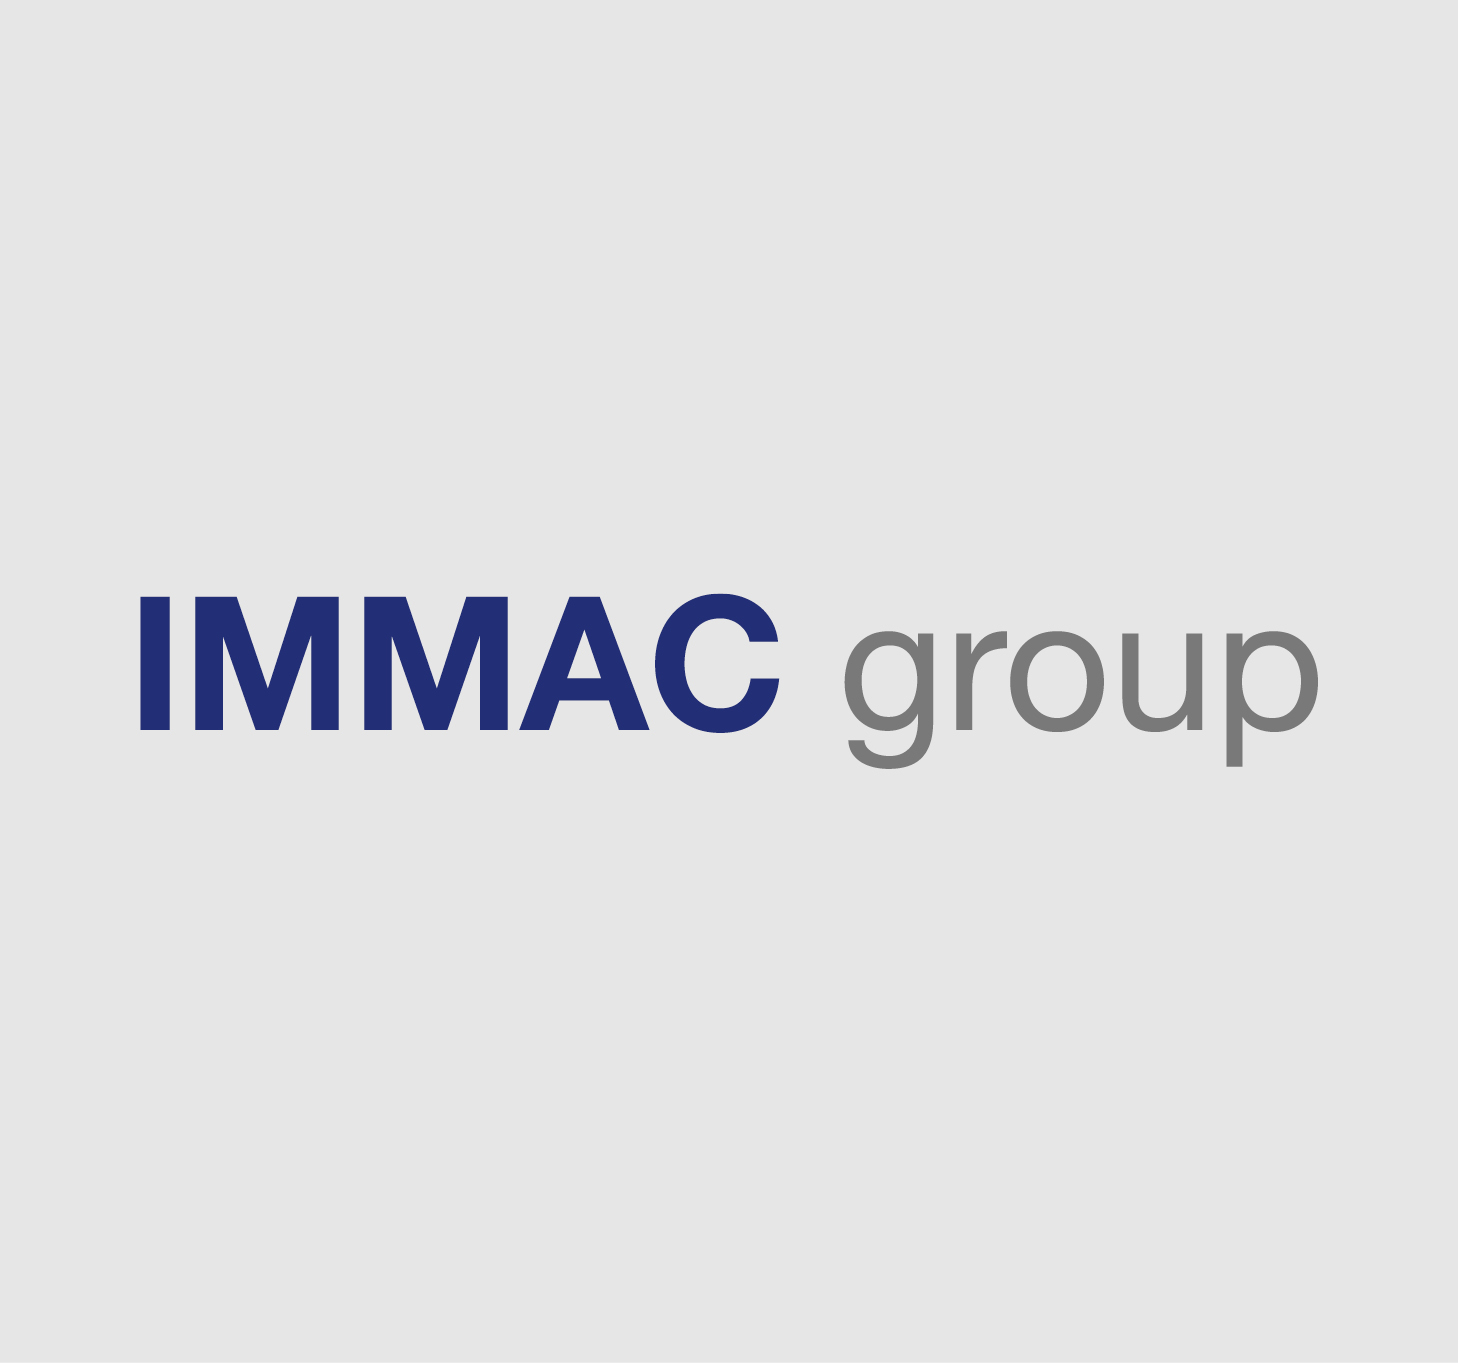 IMMAC_group